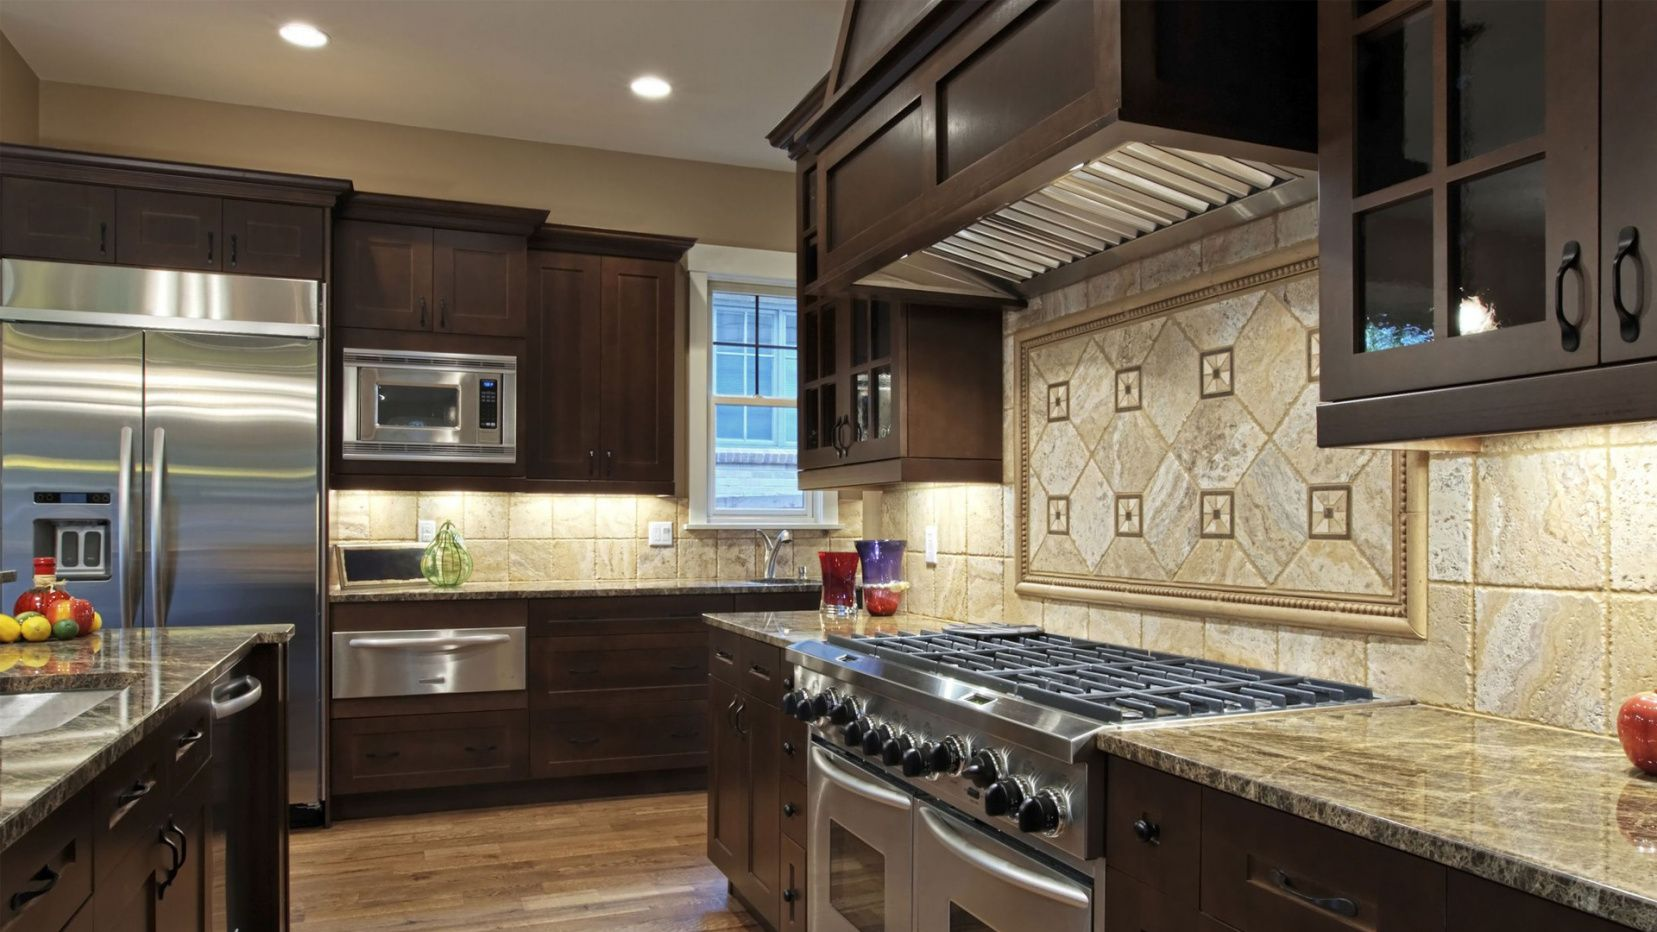 Charmant 2018 Cheap Granite Countertops Installed   Kitchen Island Countertop Ideas  Check More At Http:/